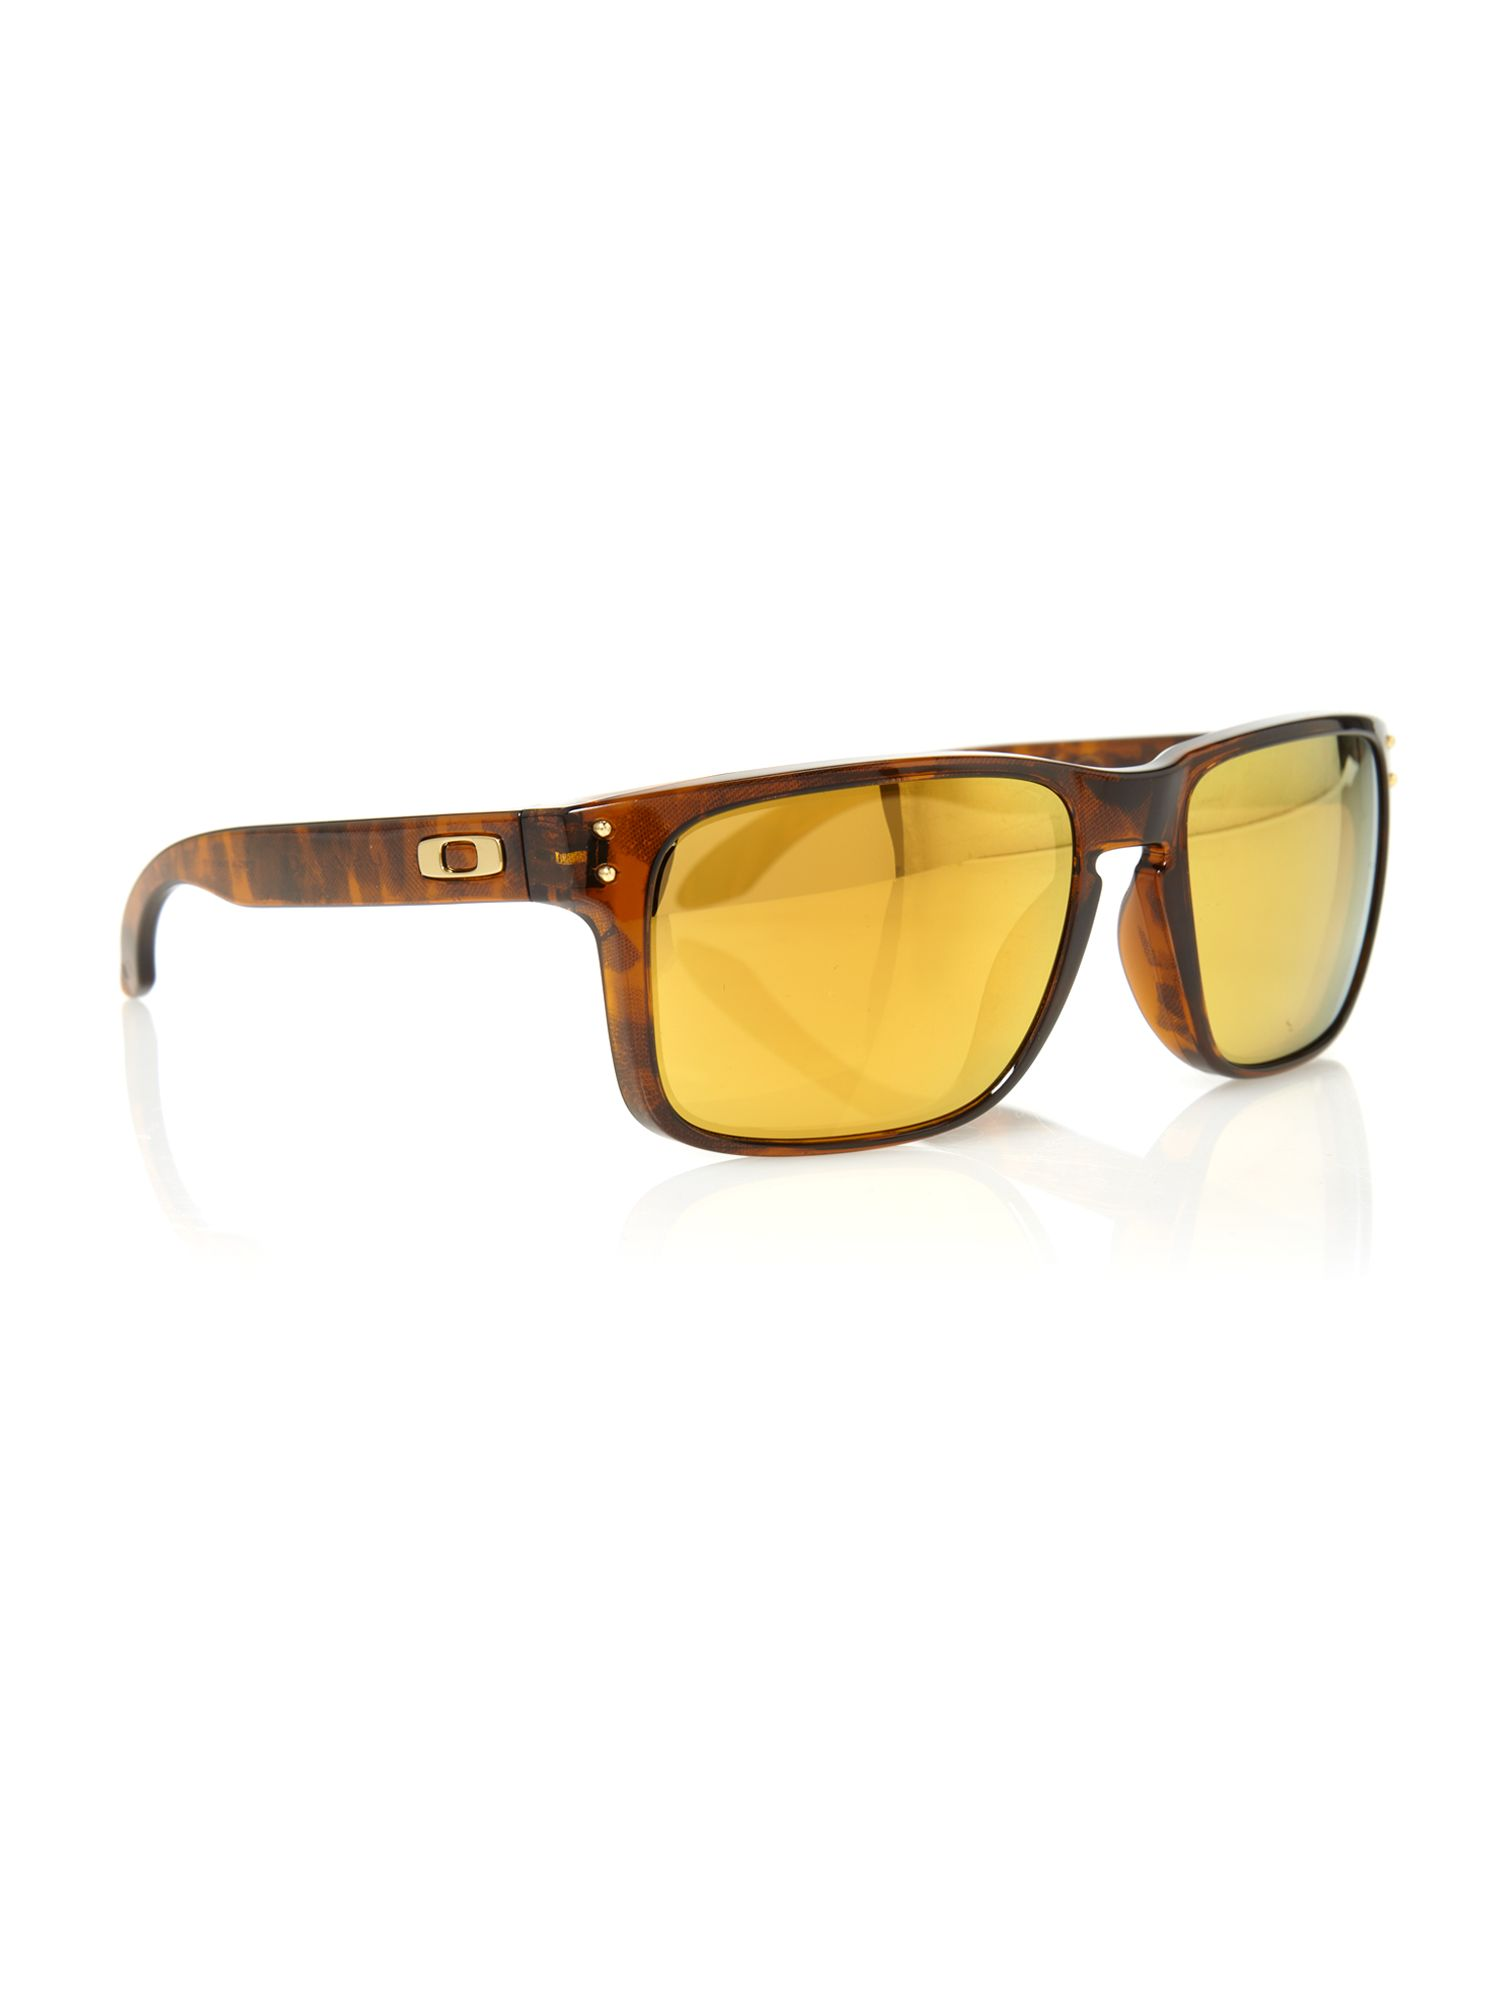 Men`s OO9102 signature sunglasses